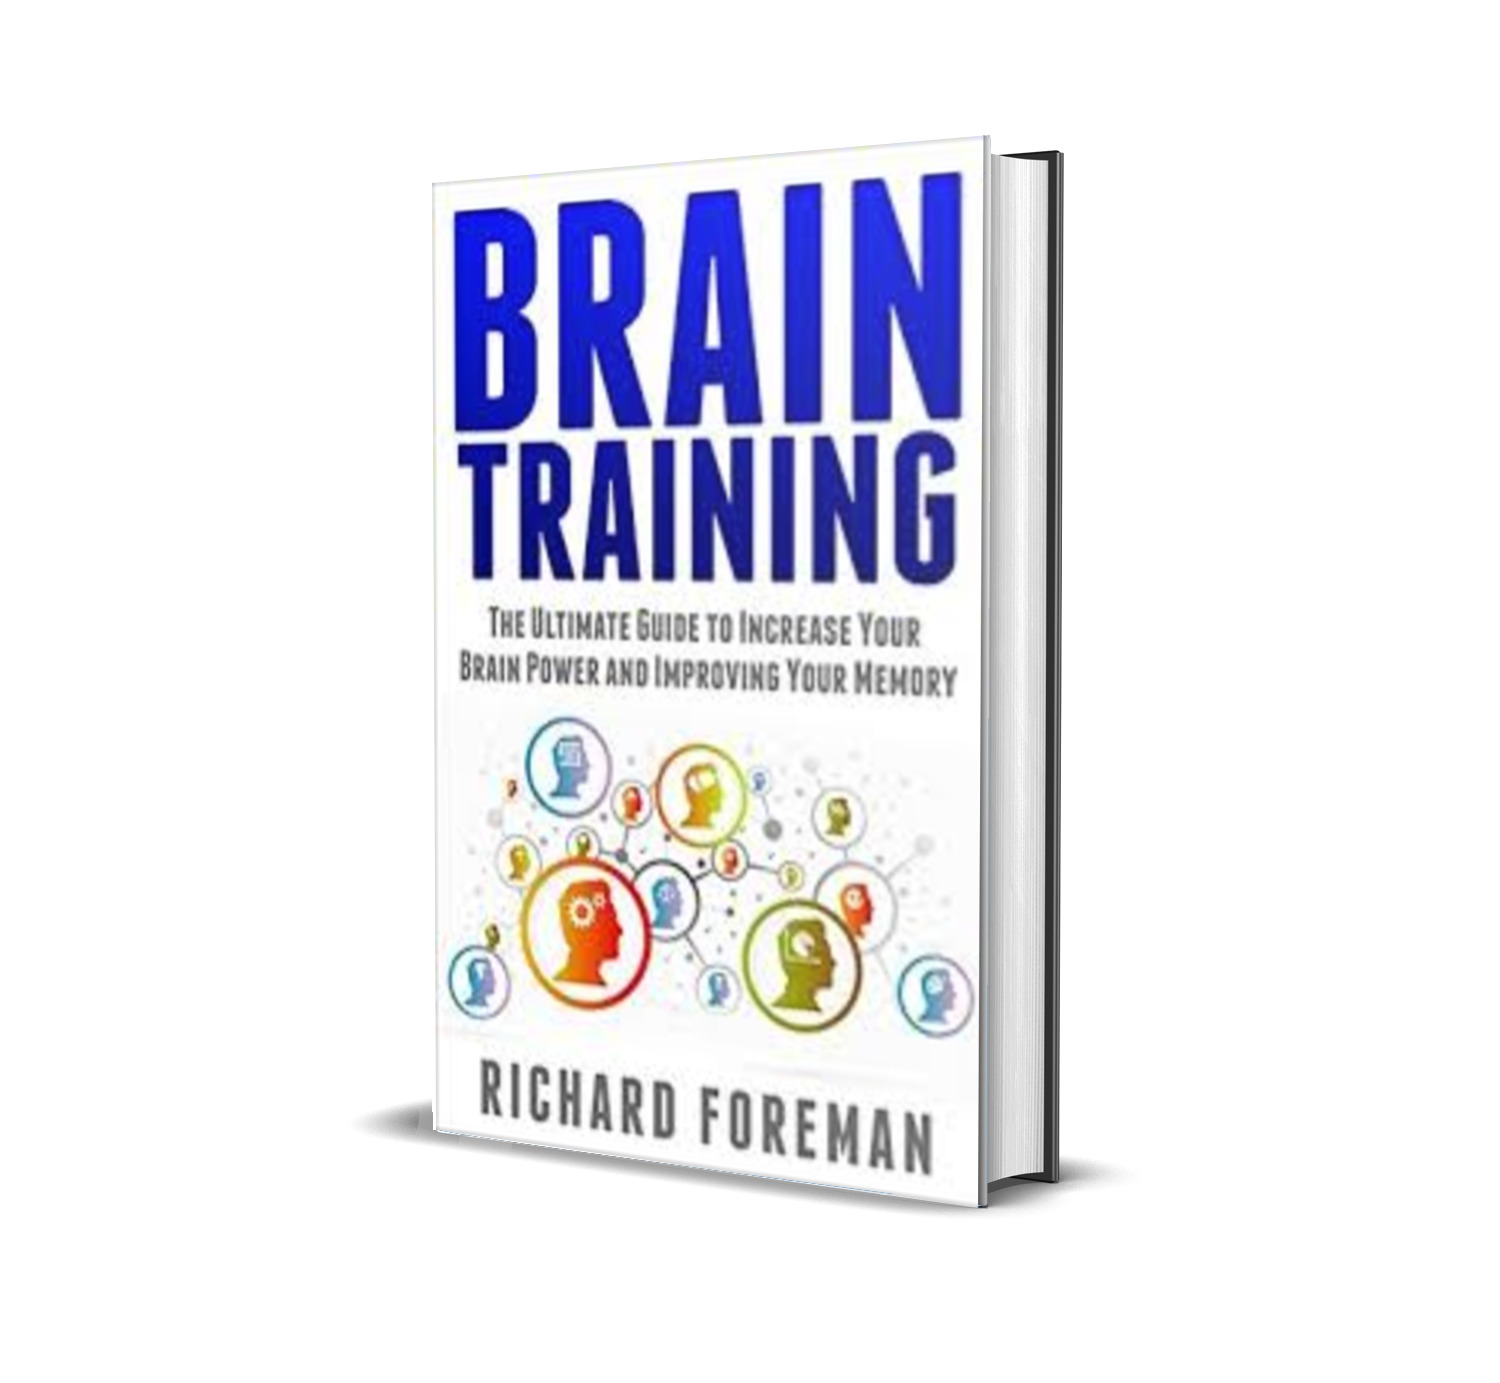 Brain Training The Ultimate Guide to Increase Your Brain Power and Improving Your Memory-Richard Foreman